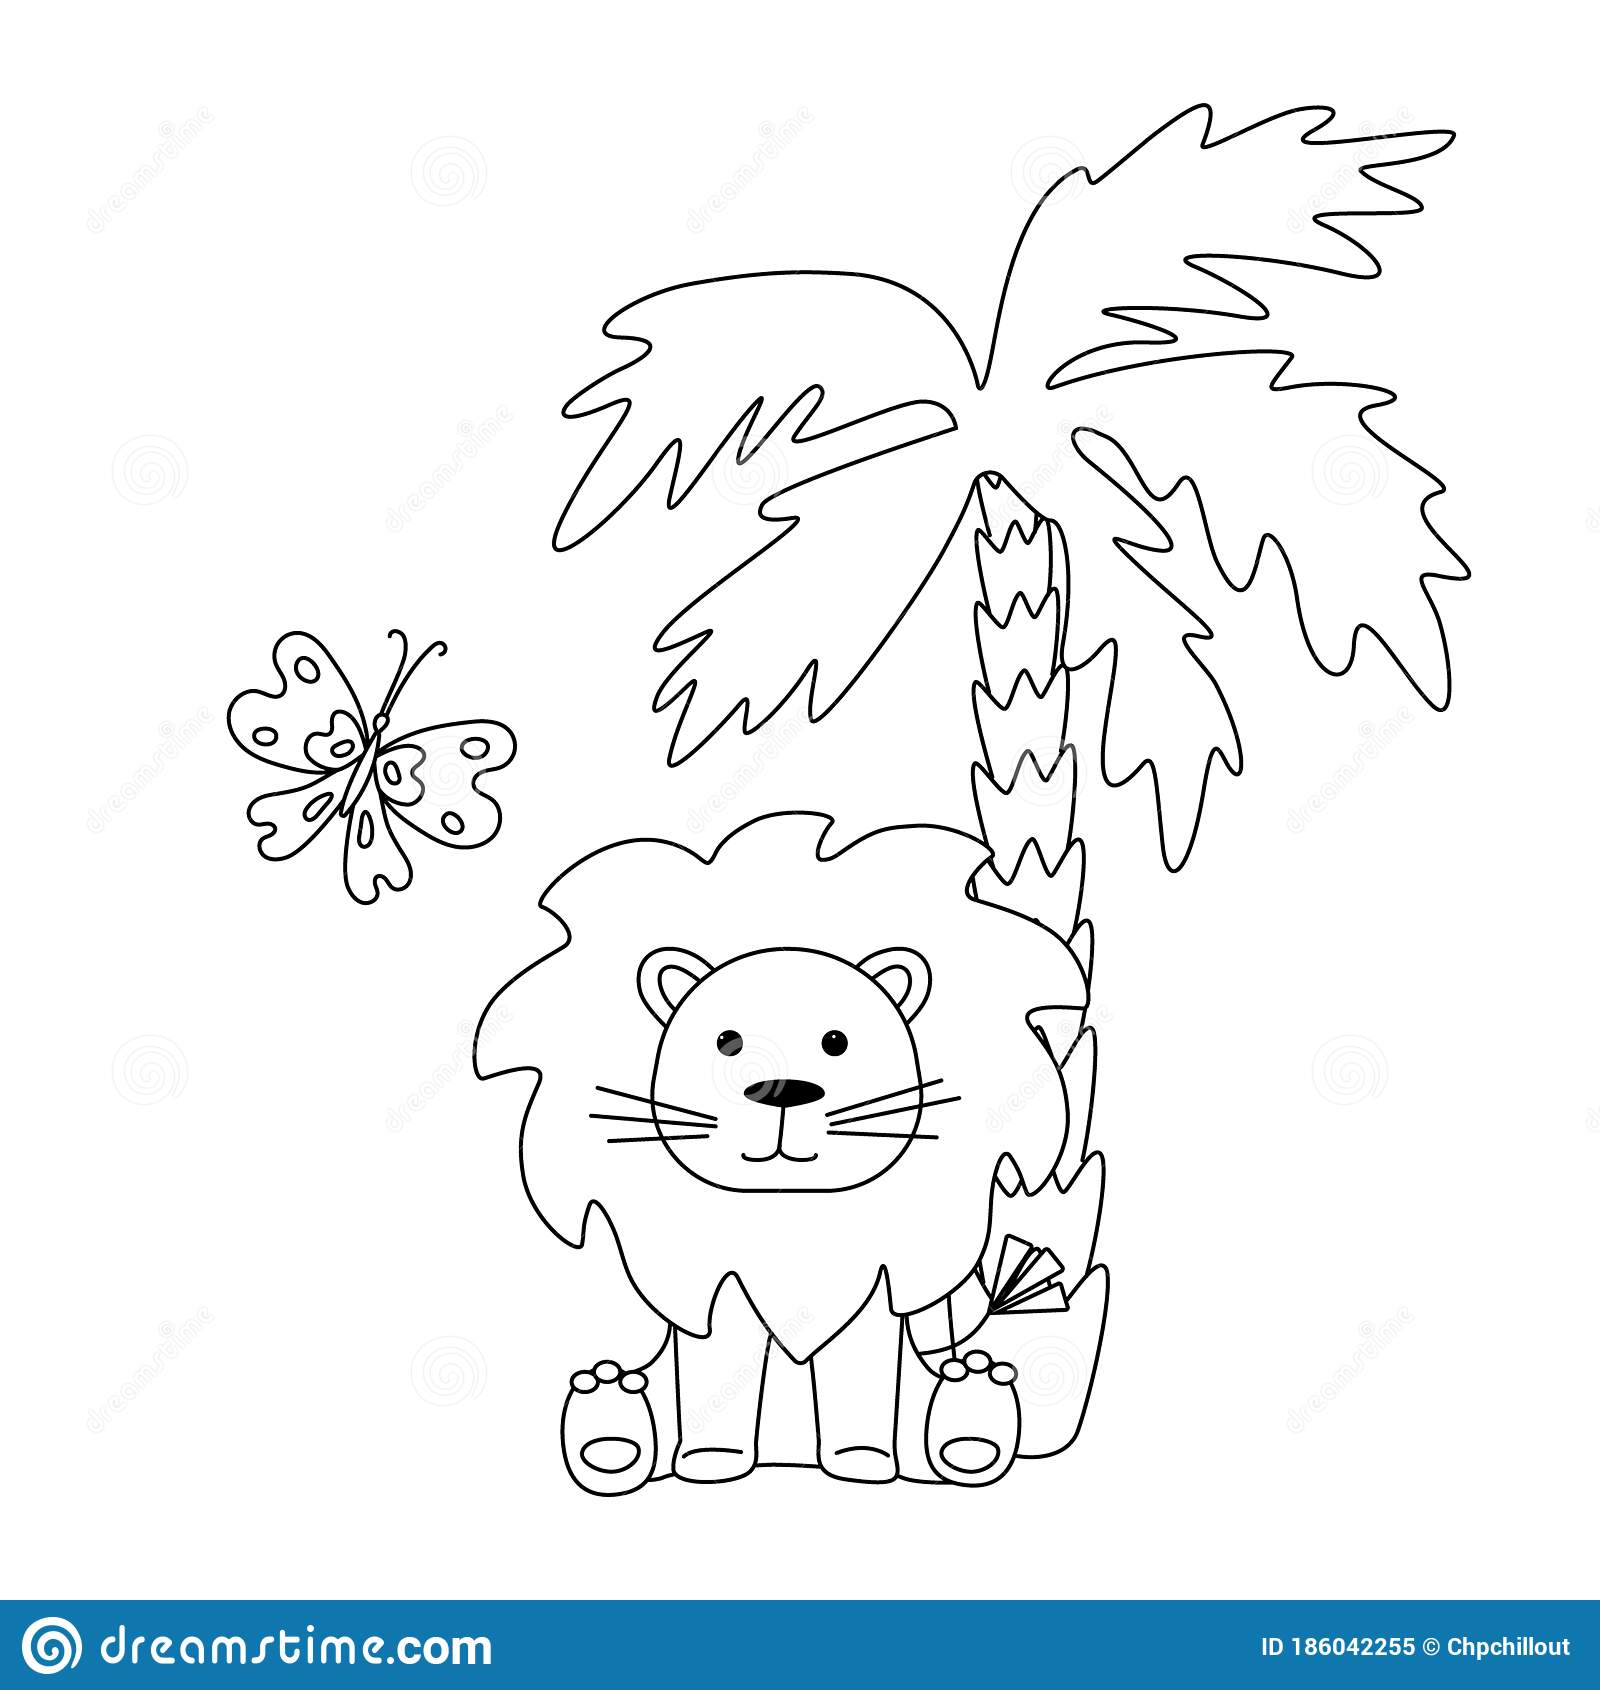 Lion Kids Coloring Stock Illustrations 591 Lion Kids Coloring Stock Illustrations Vectors Clipart Dreamstime Anyone can make there are many printable lion templates available online for your use and benefit and these can also. dreamstime com